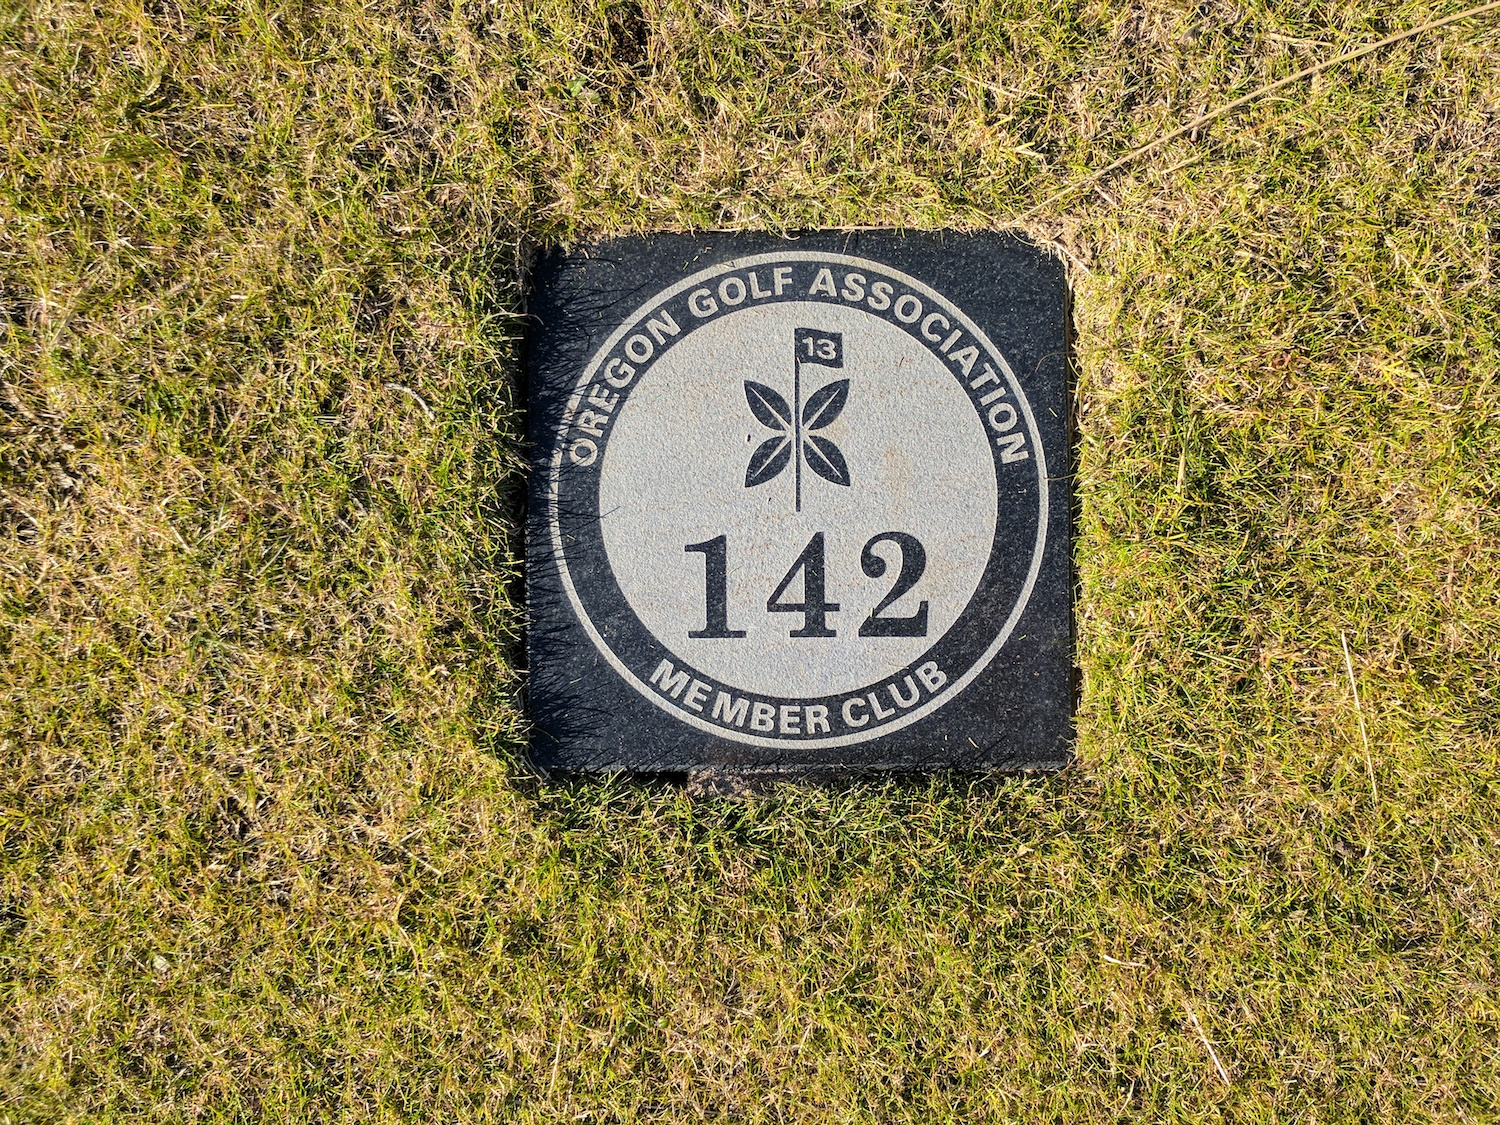 ...or this in-ground yardage marker at the Preserve.